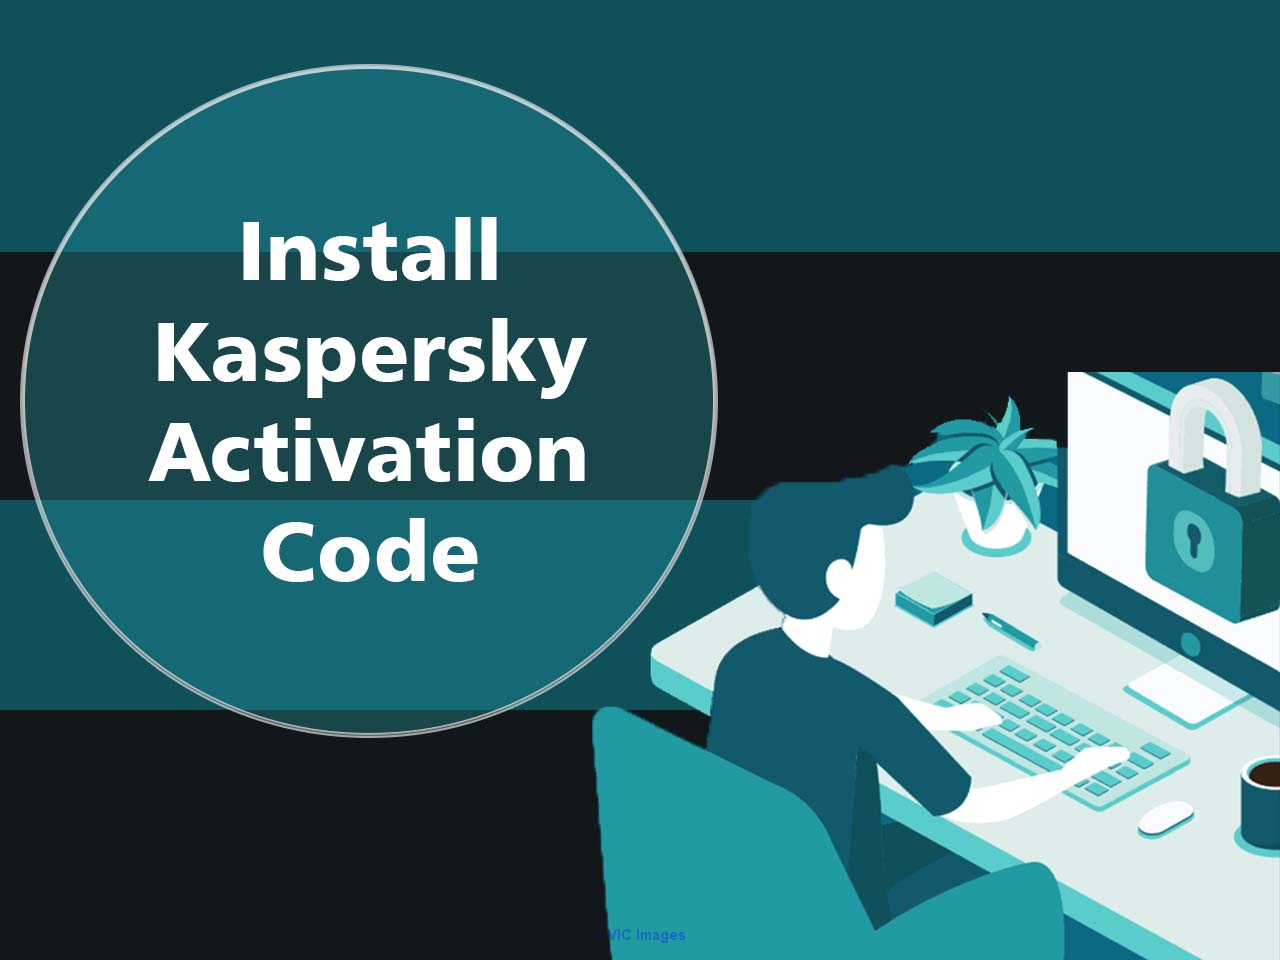 Install kaspersky with activation code calgary